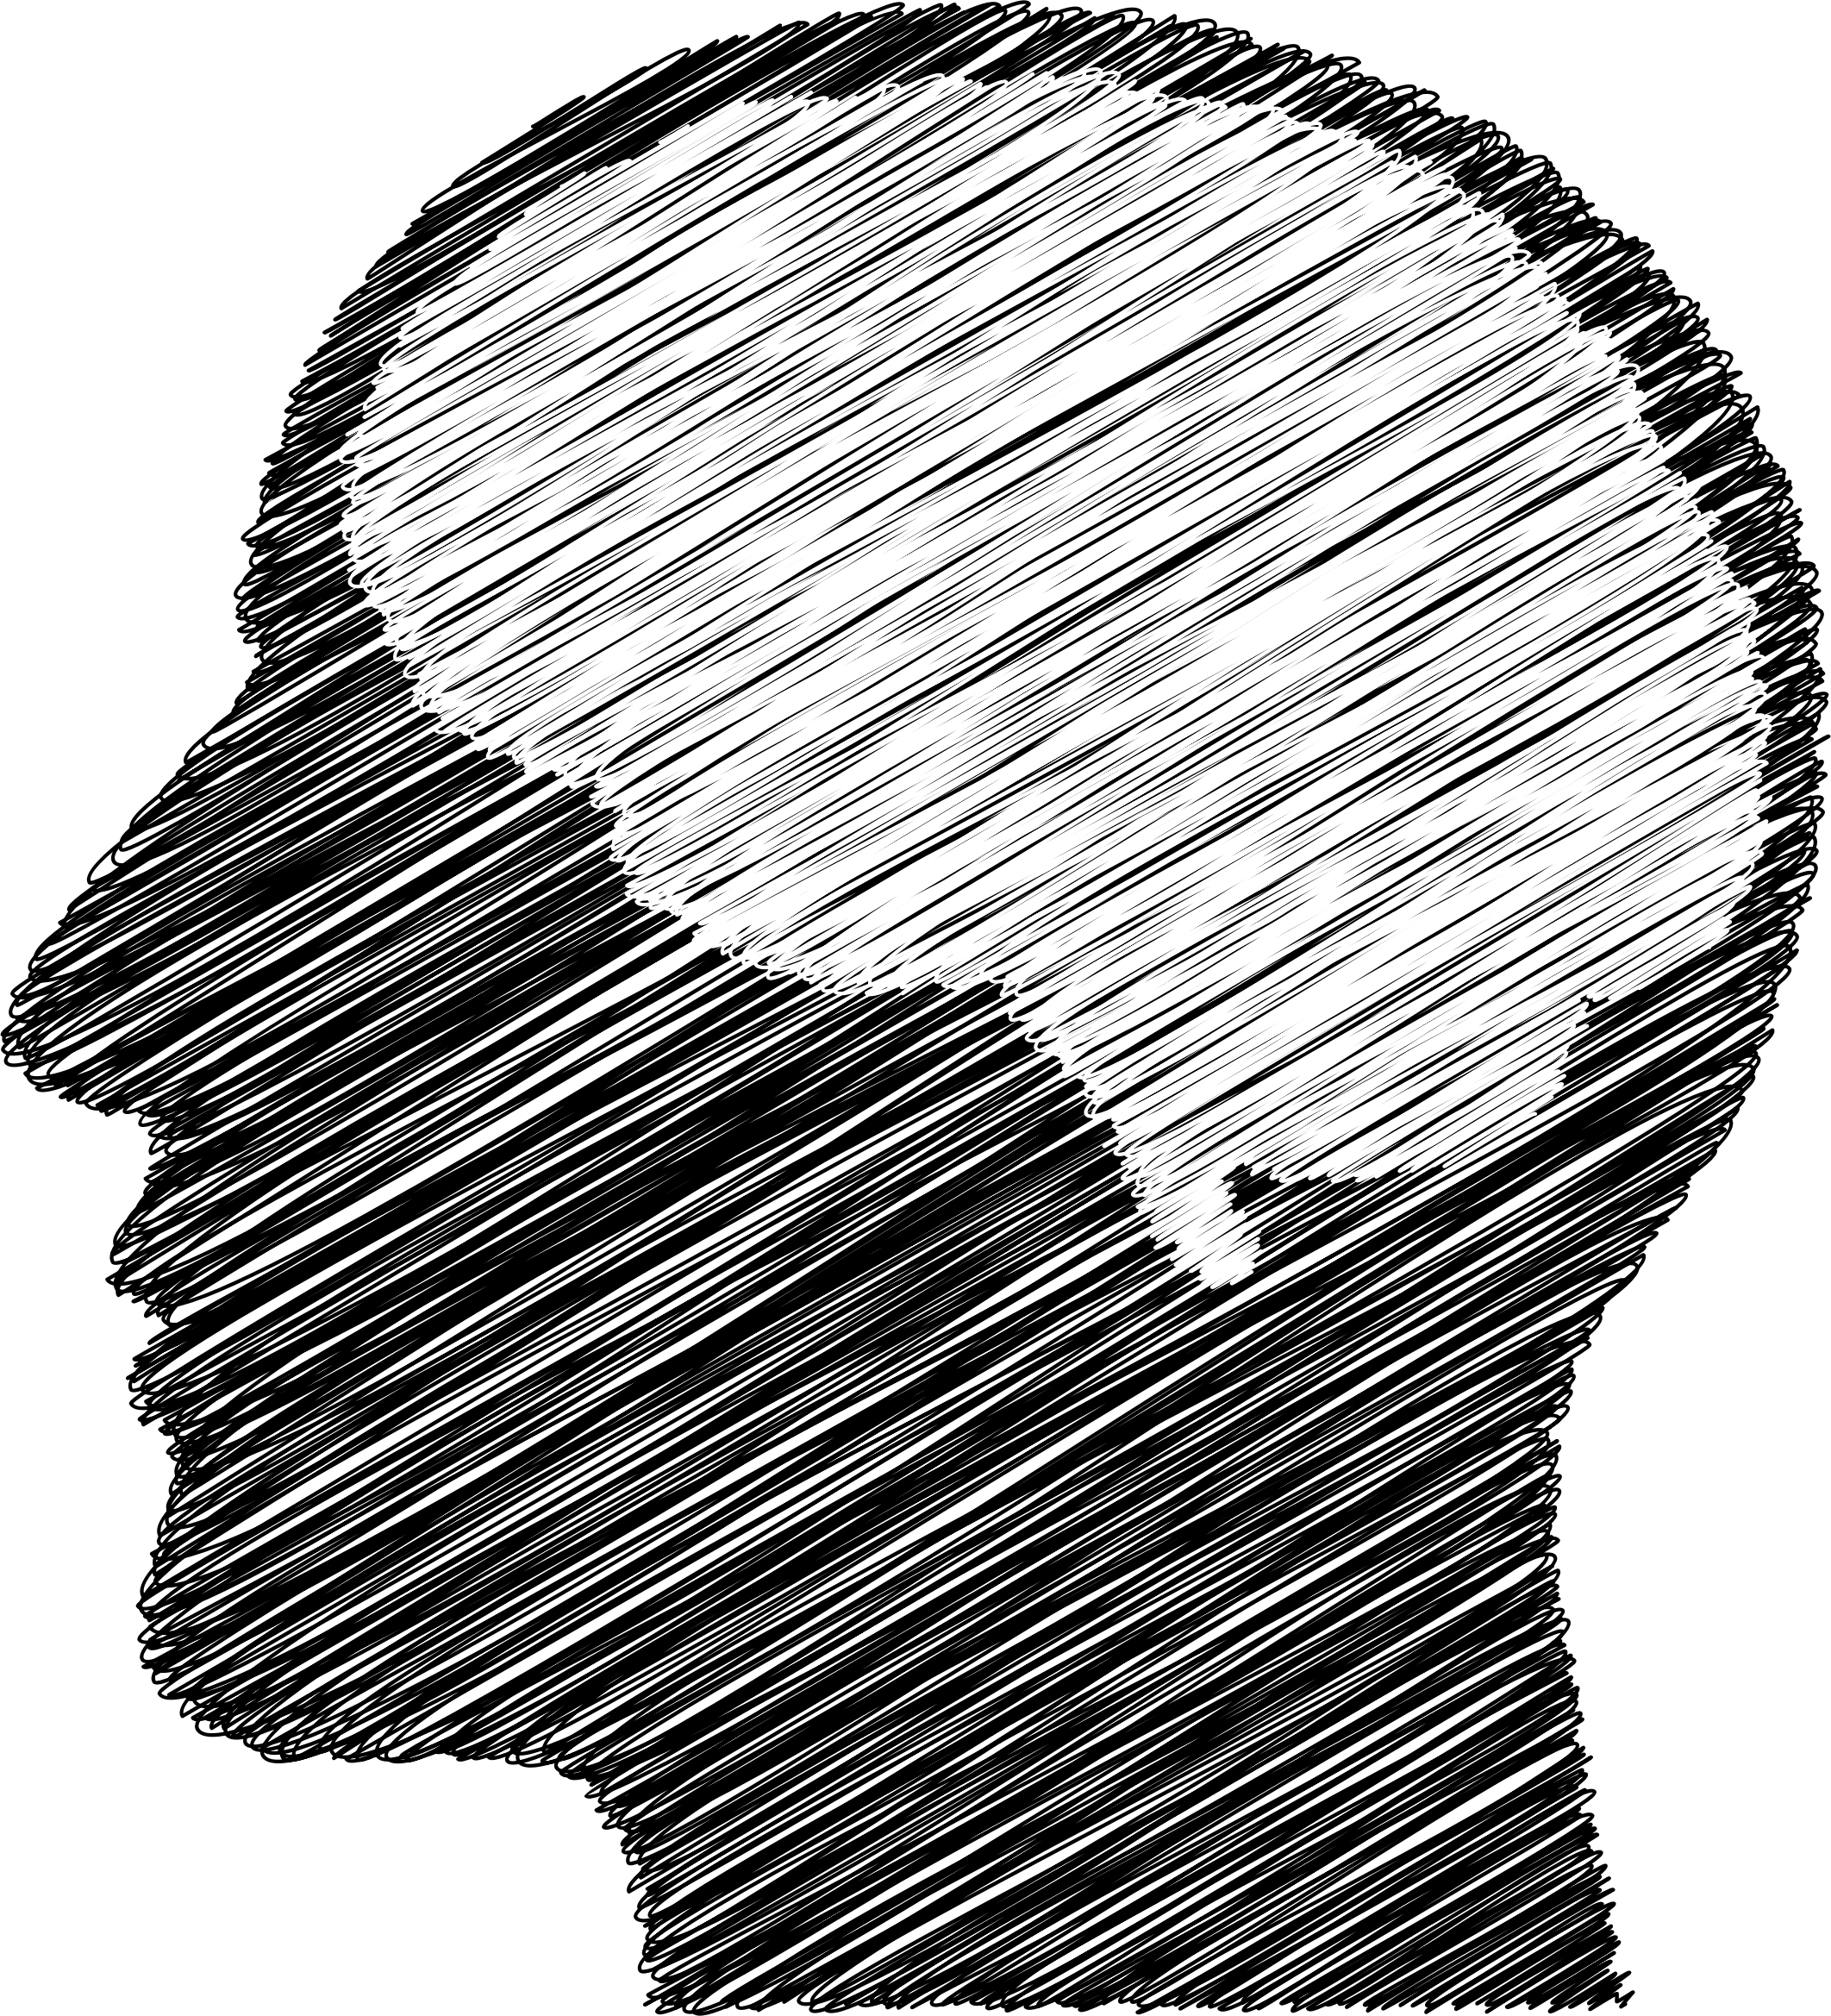 Brain clipart silhouette. Sketched man big image